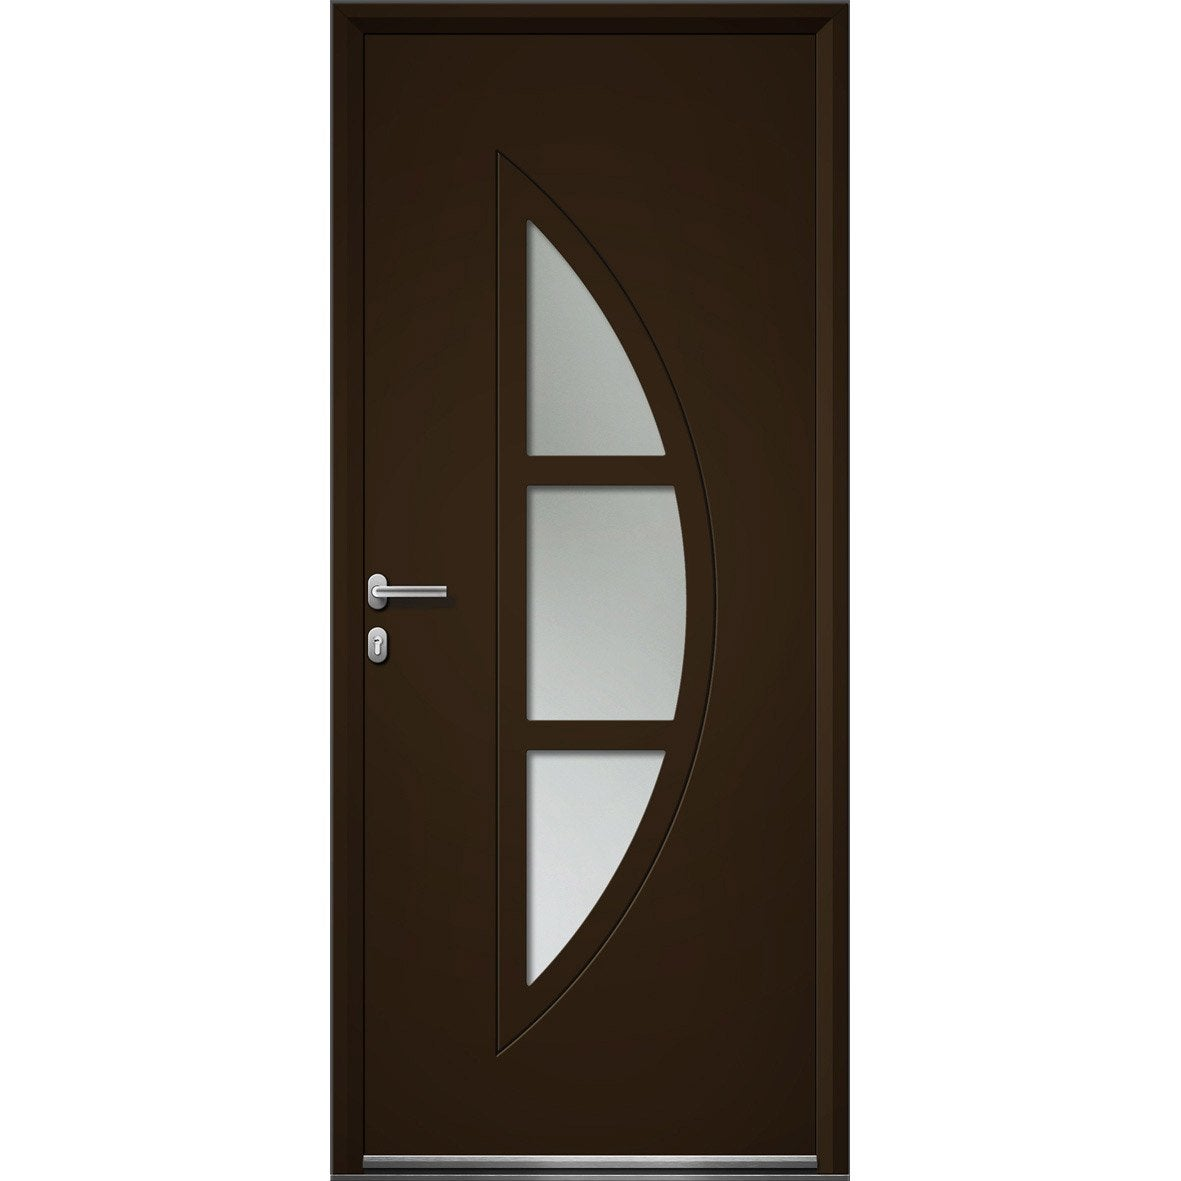 Porte service sur mesure id es de for Decoration porte aluminium